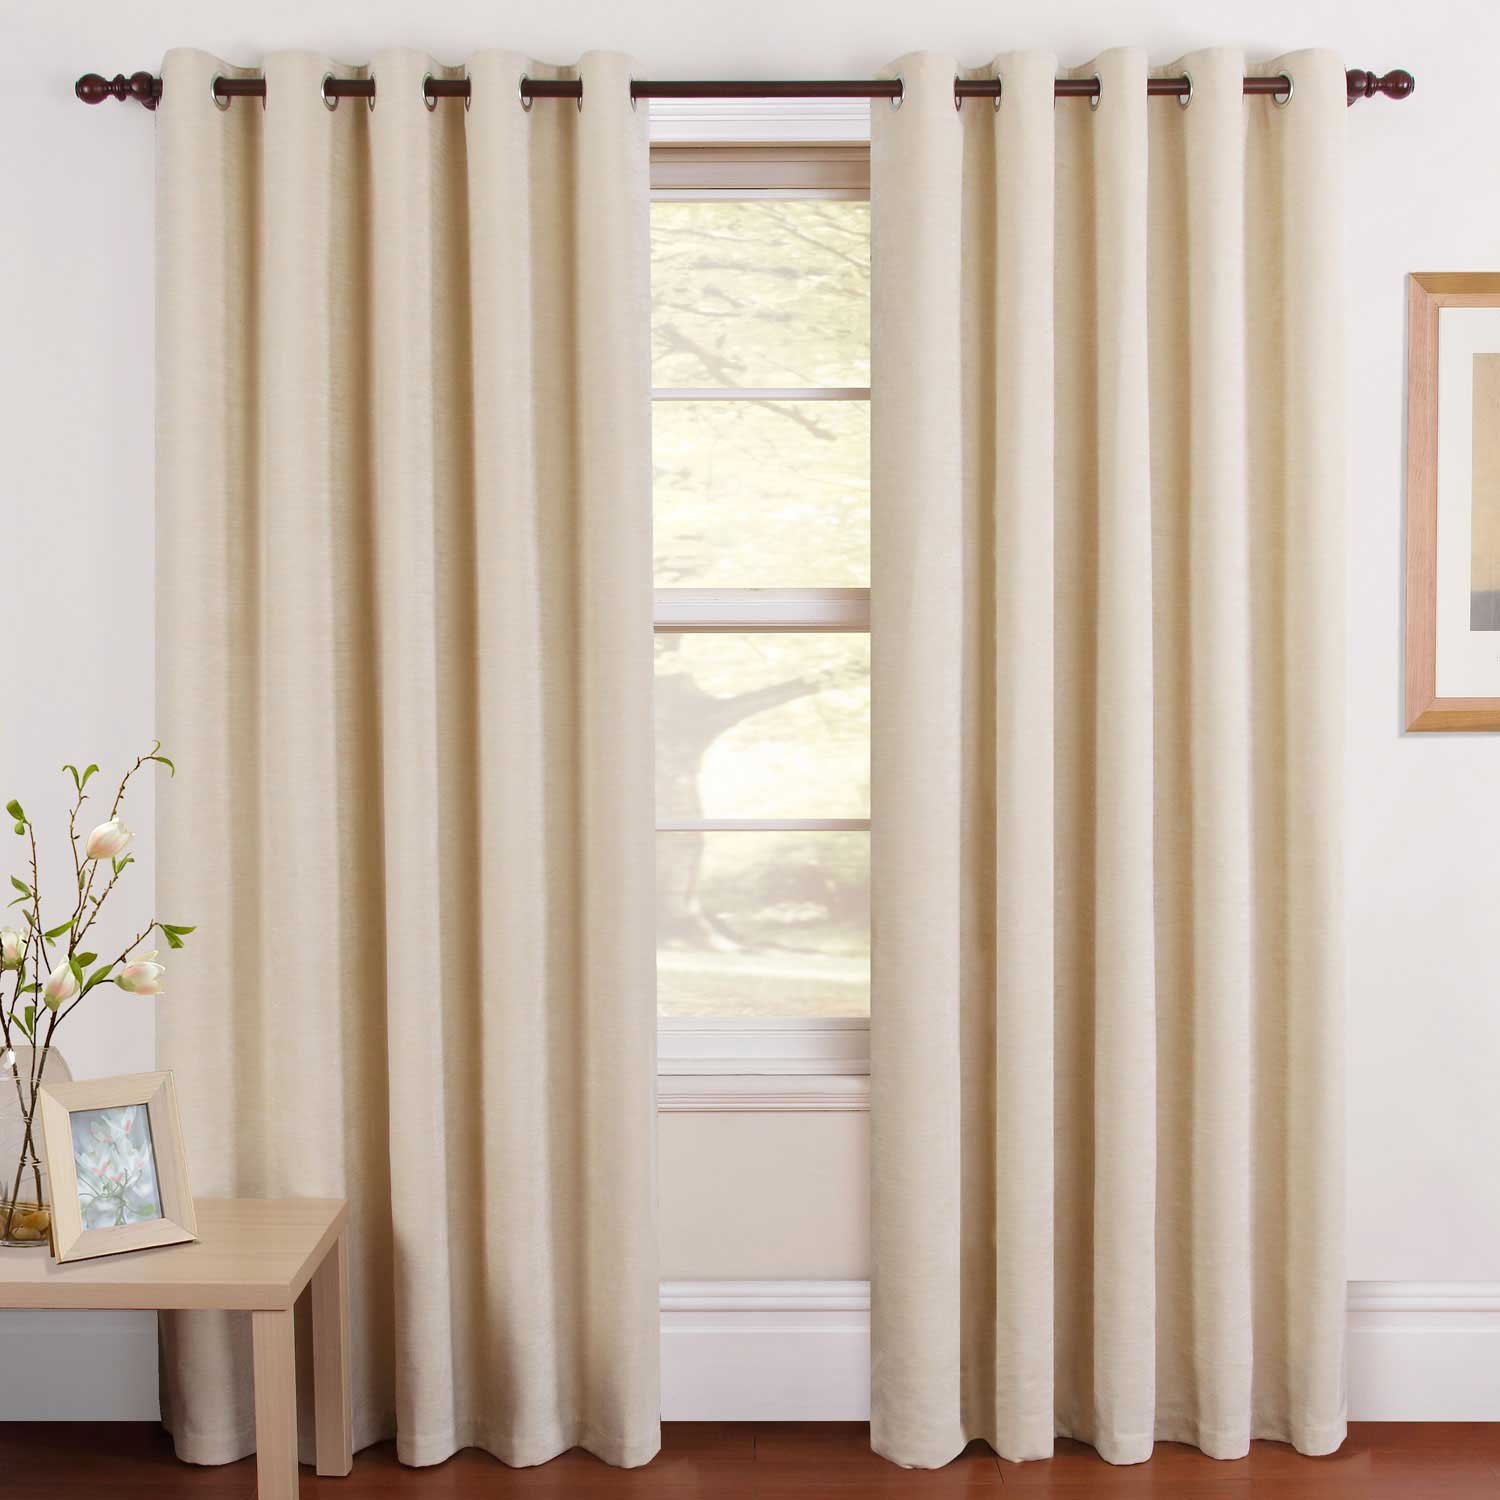 Lumatex india for Contemporary kitchen curtains ideas